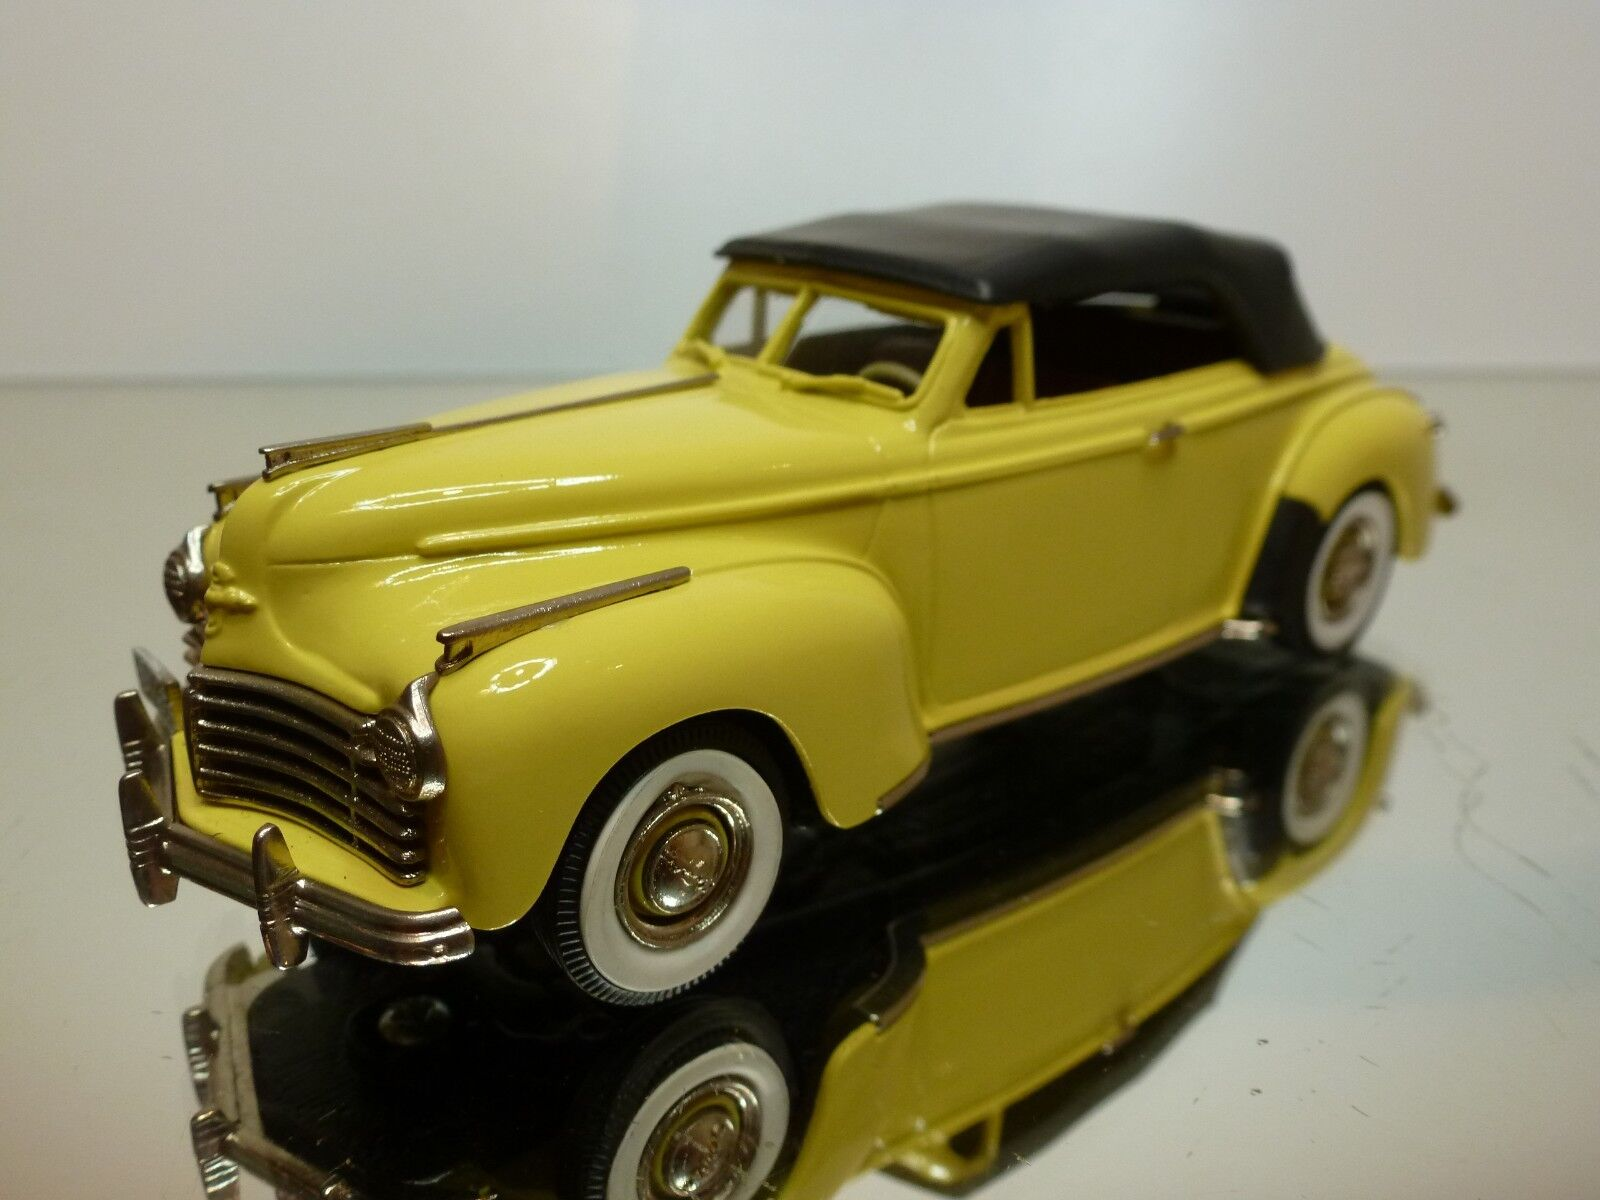 BROOKLIN MODELS CHRYSLER NEWYORKER CONVERTIBLE - jaune 1 43 - EXCELLENT - 6